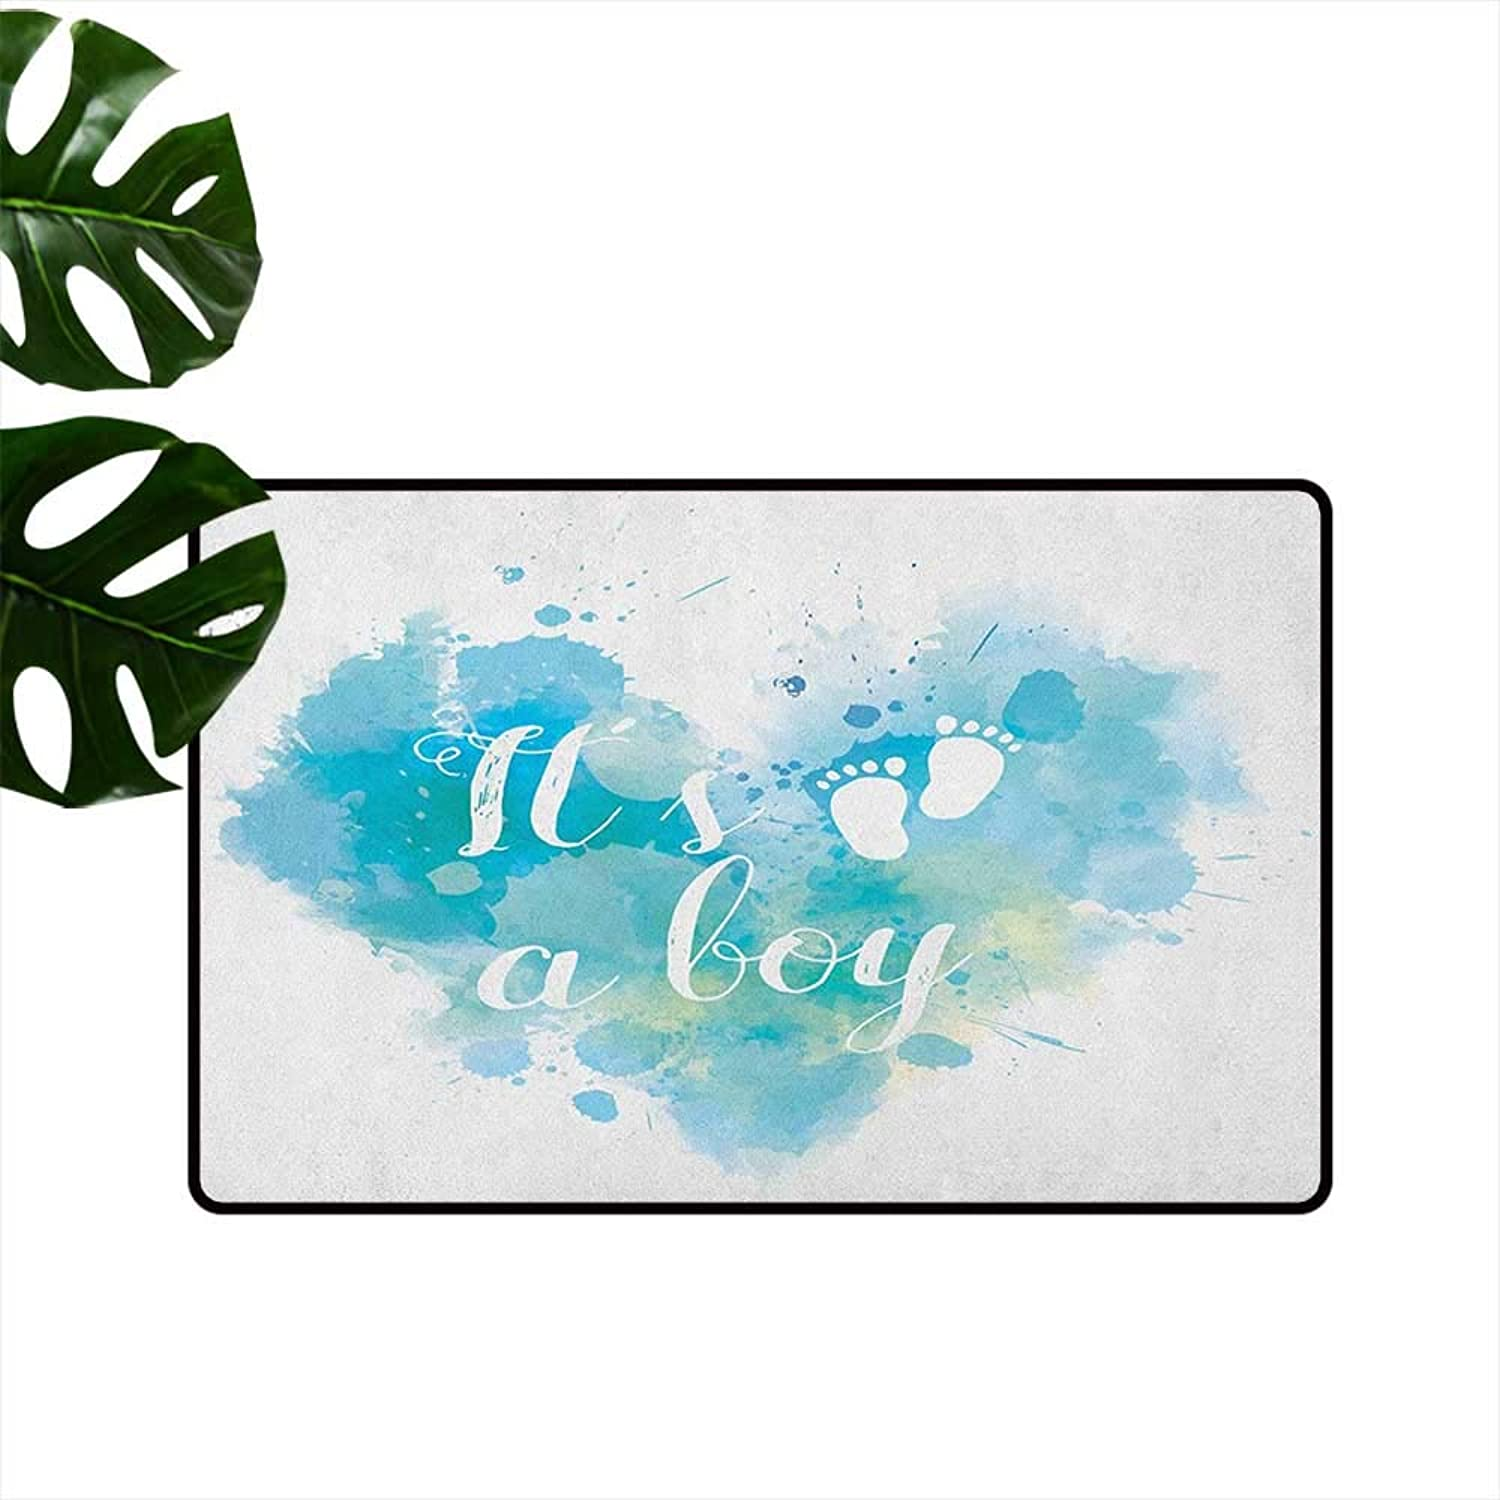 Gender Reveal Non-Slip Door mat Its A Boy Quote on Grunge Pastel Background with Brushstroke Effect Easy to Clean W35 x L59 Turquoise and bluee